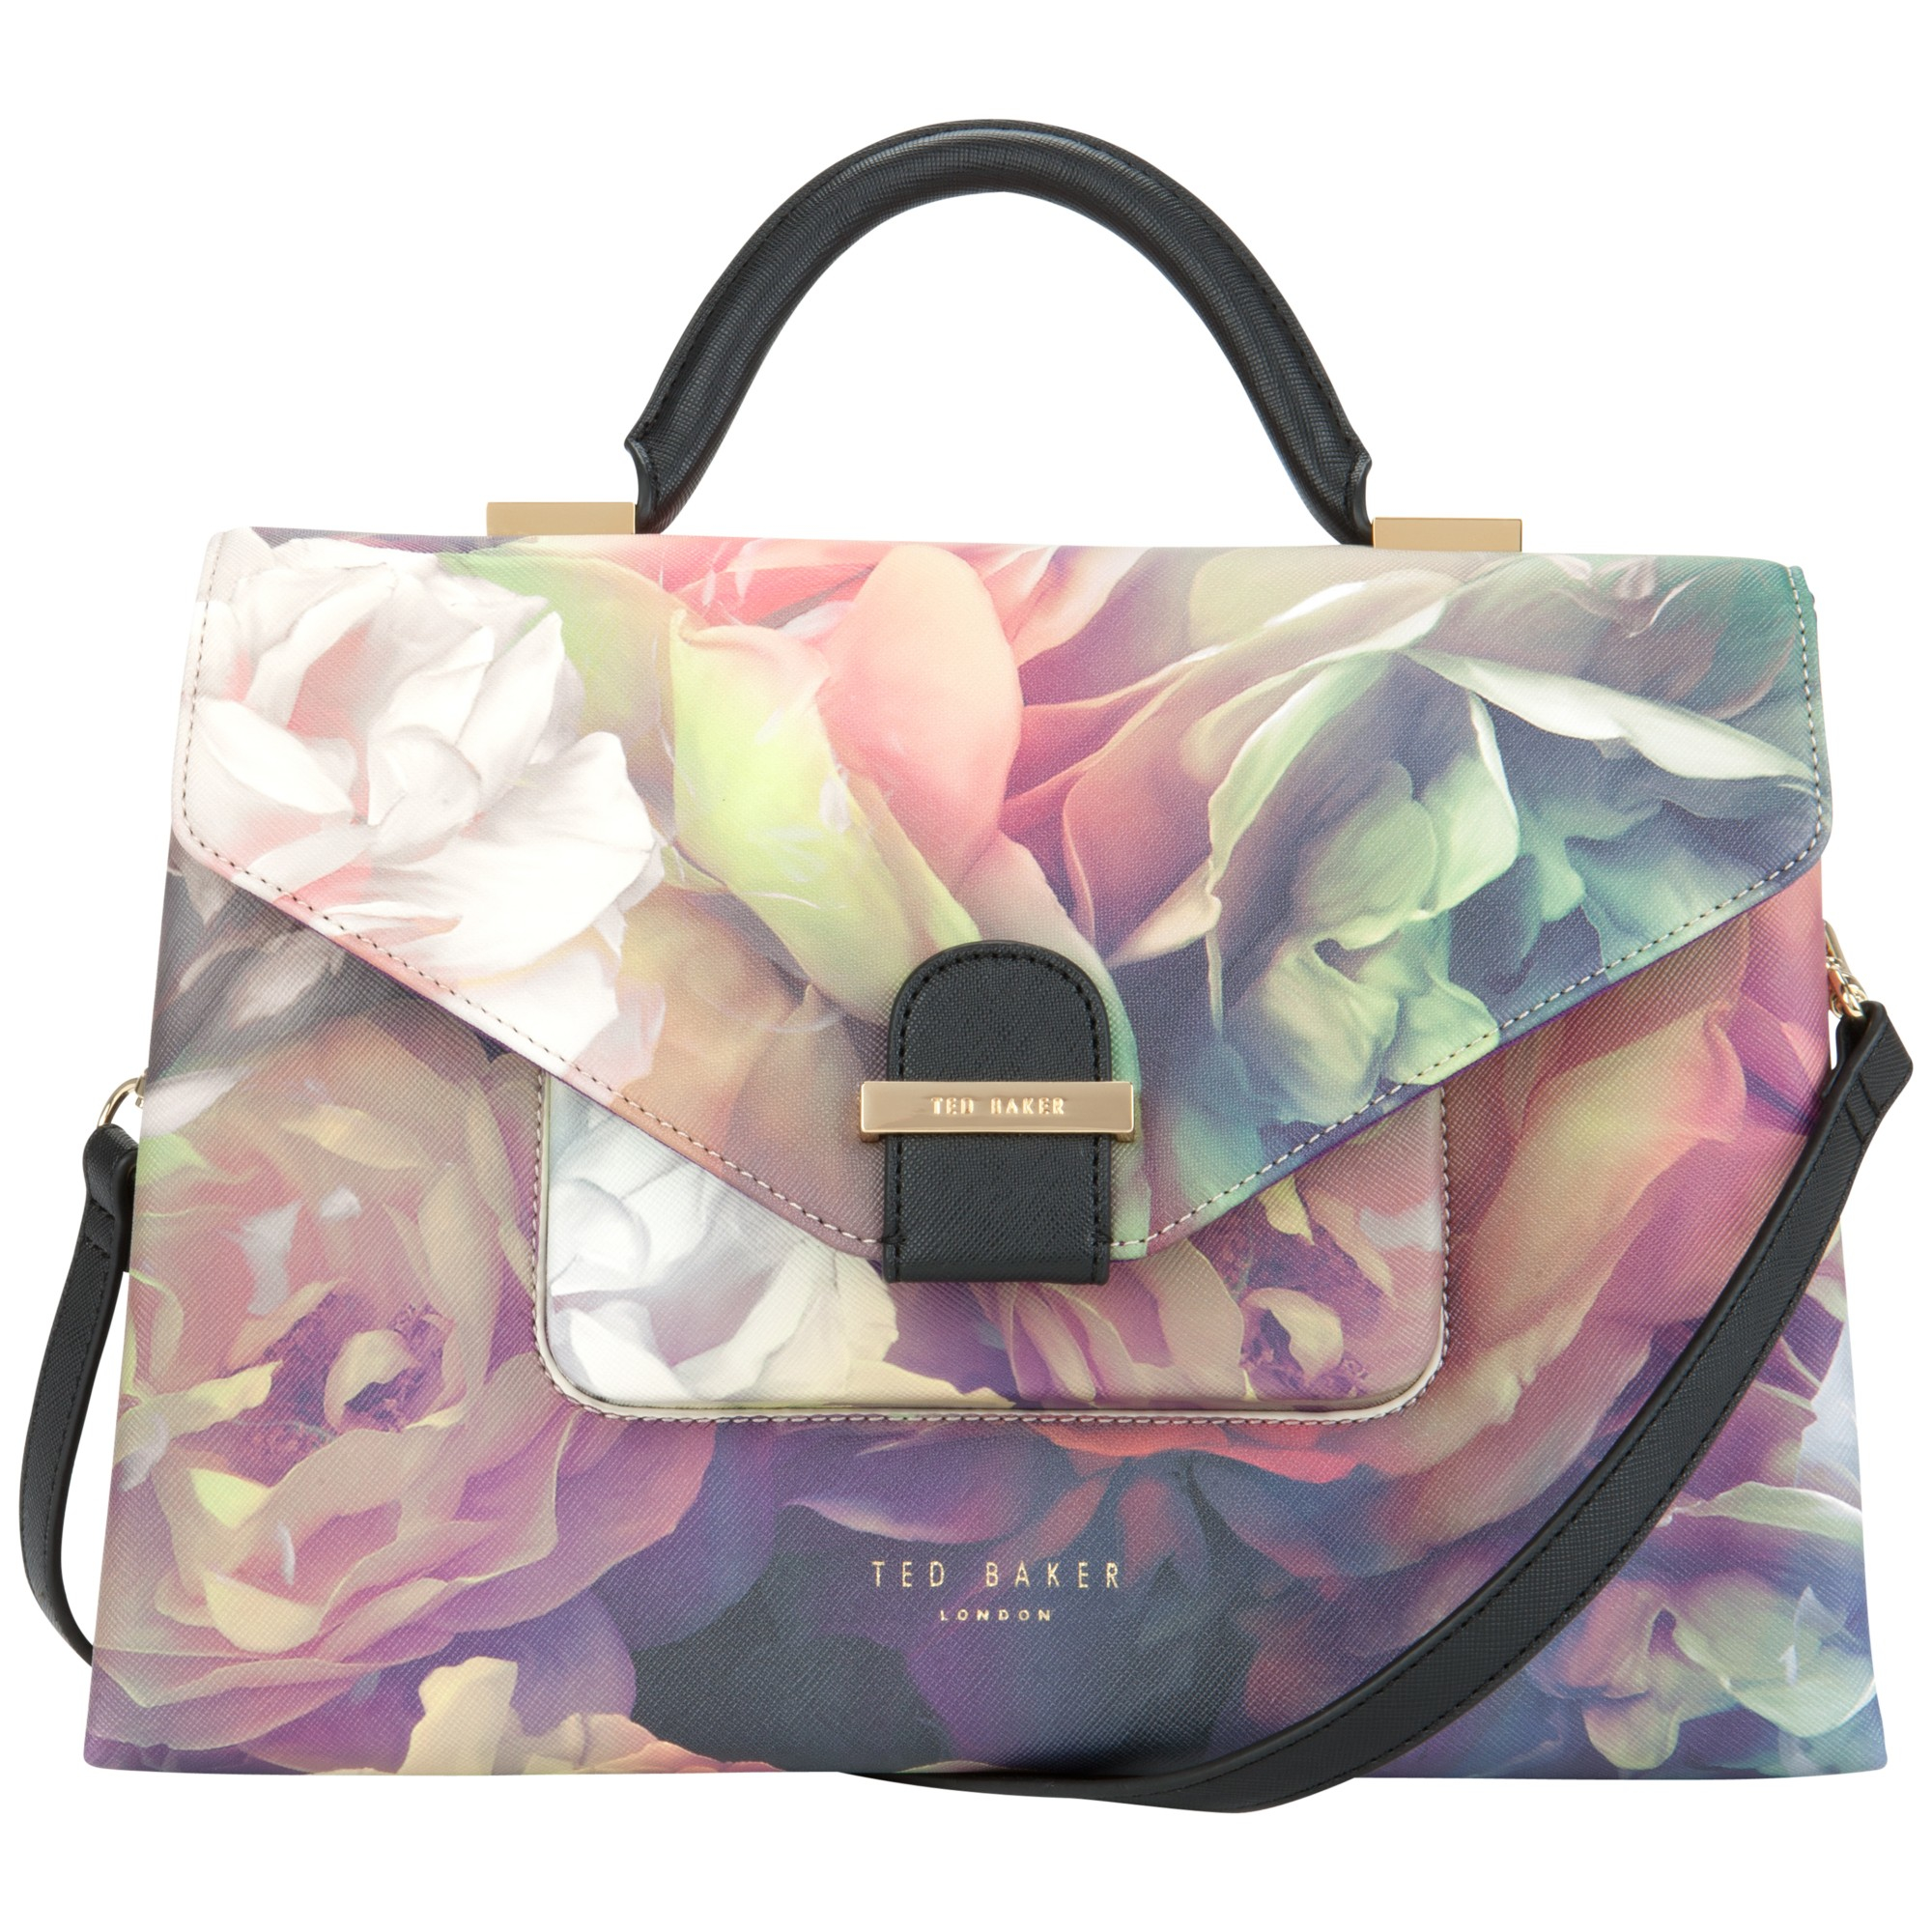 6efed1393f4a52 John Lewis Ted Baker Zetaa Exotic Small Tote Bag In Black Lyst